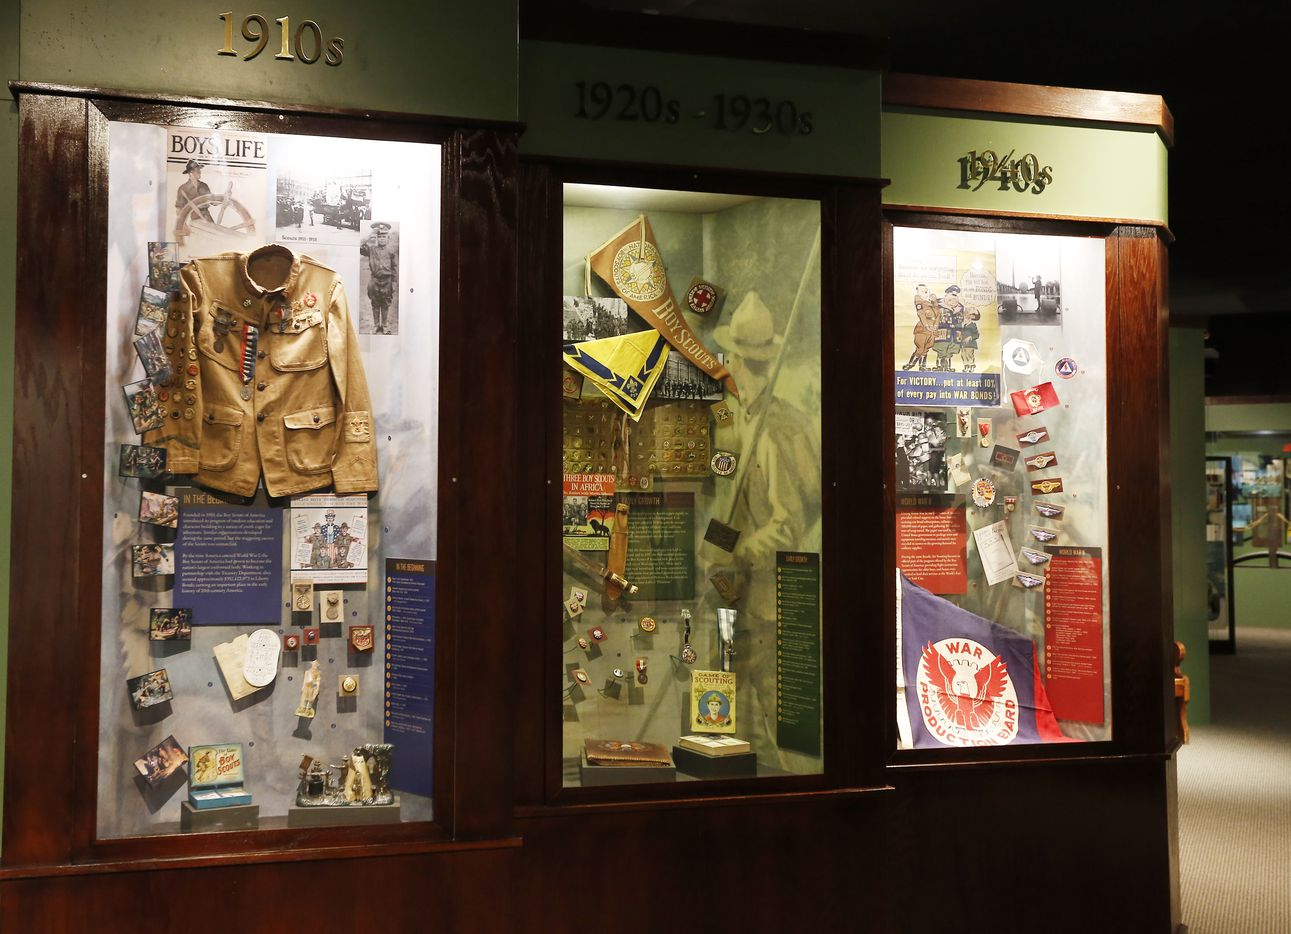 Scouting garb from the 1900s-40s is on display at the National Scouting Museum in Irving. (2015 File Photo/Brandon Wade)